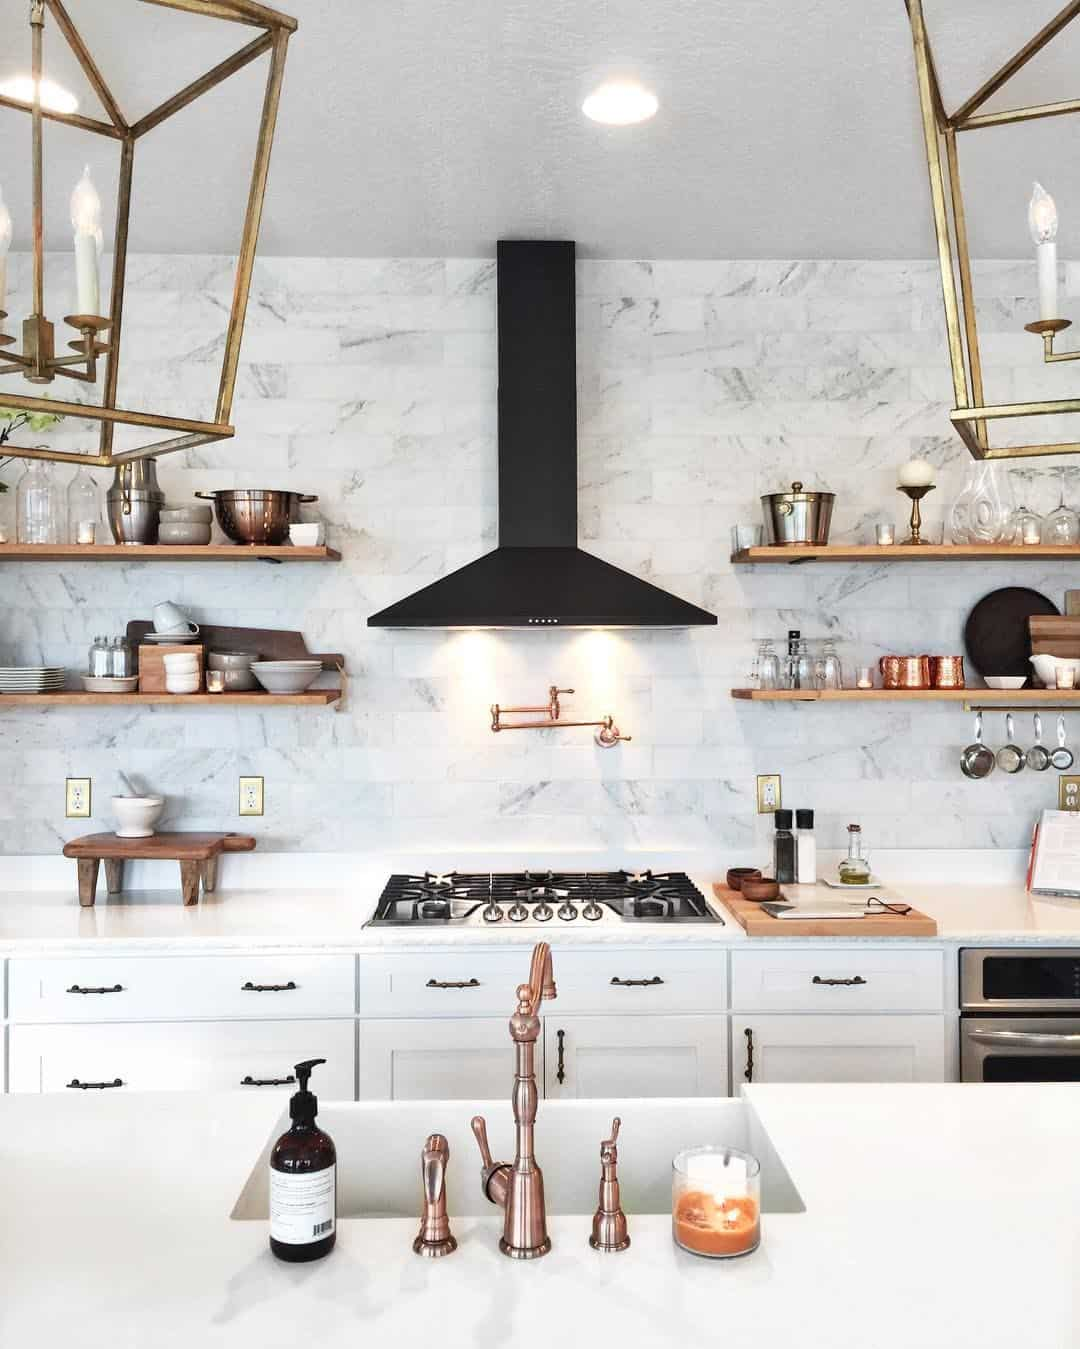 Grey In Home Decor Passing Trend Or Here To Stay: Minimalist Kitchen Ideas That Are Not Boring